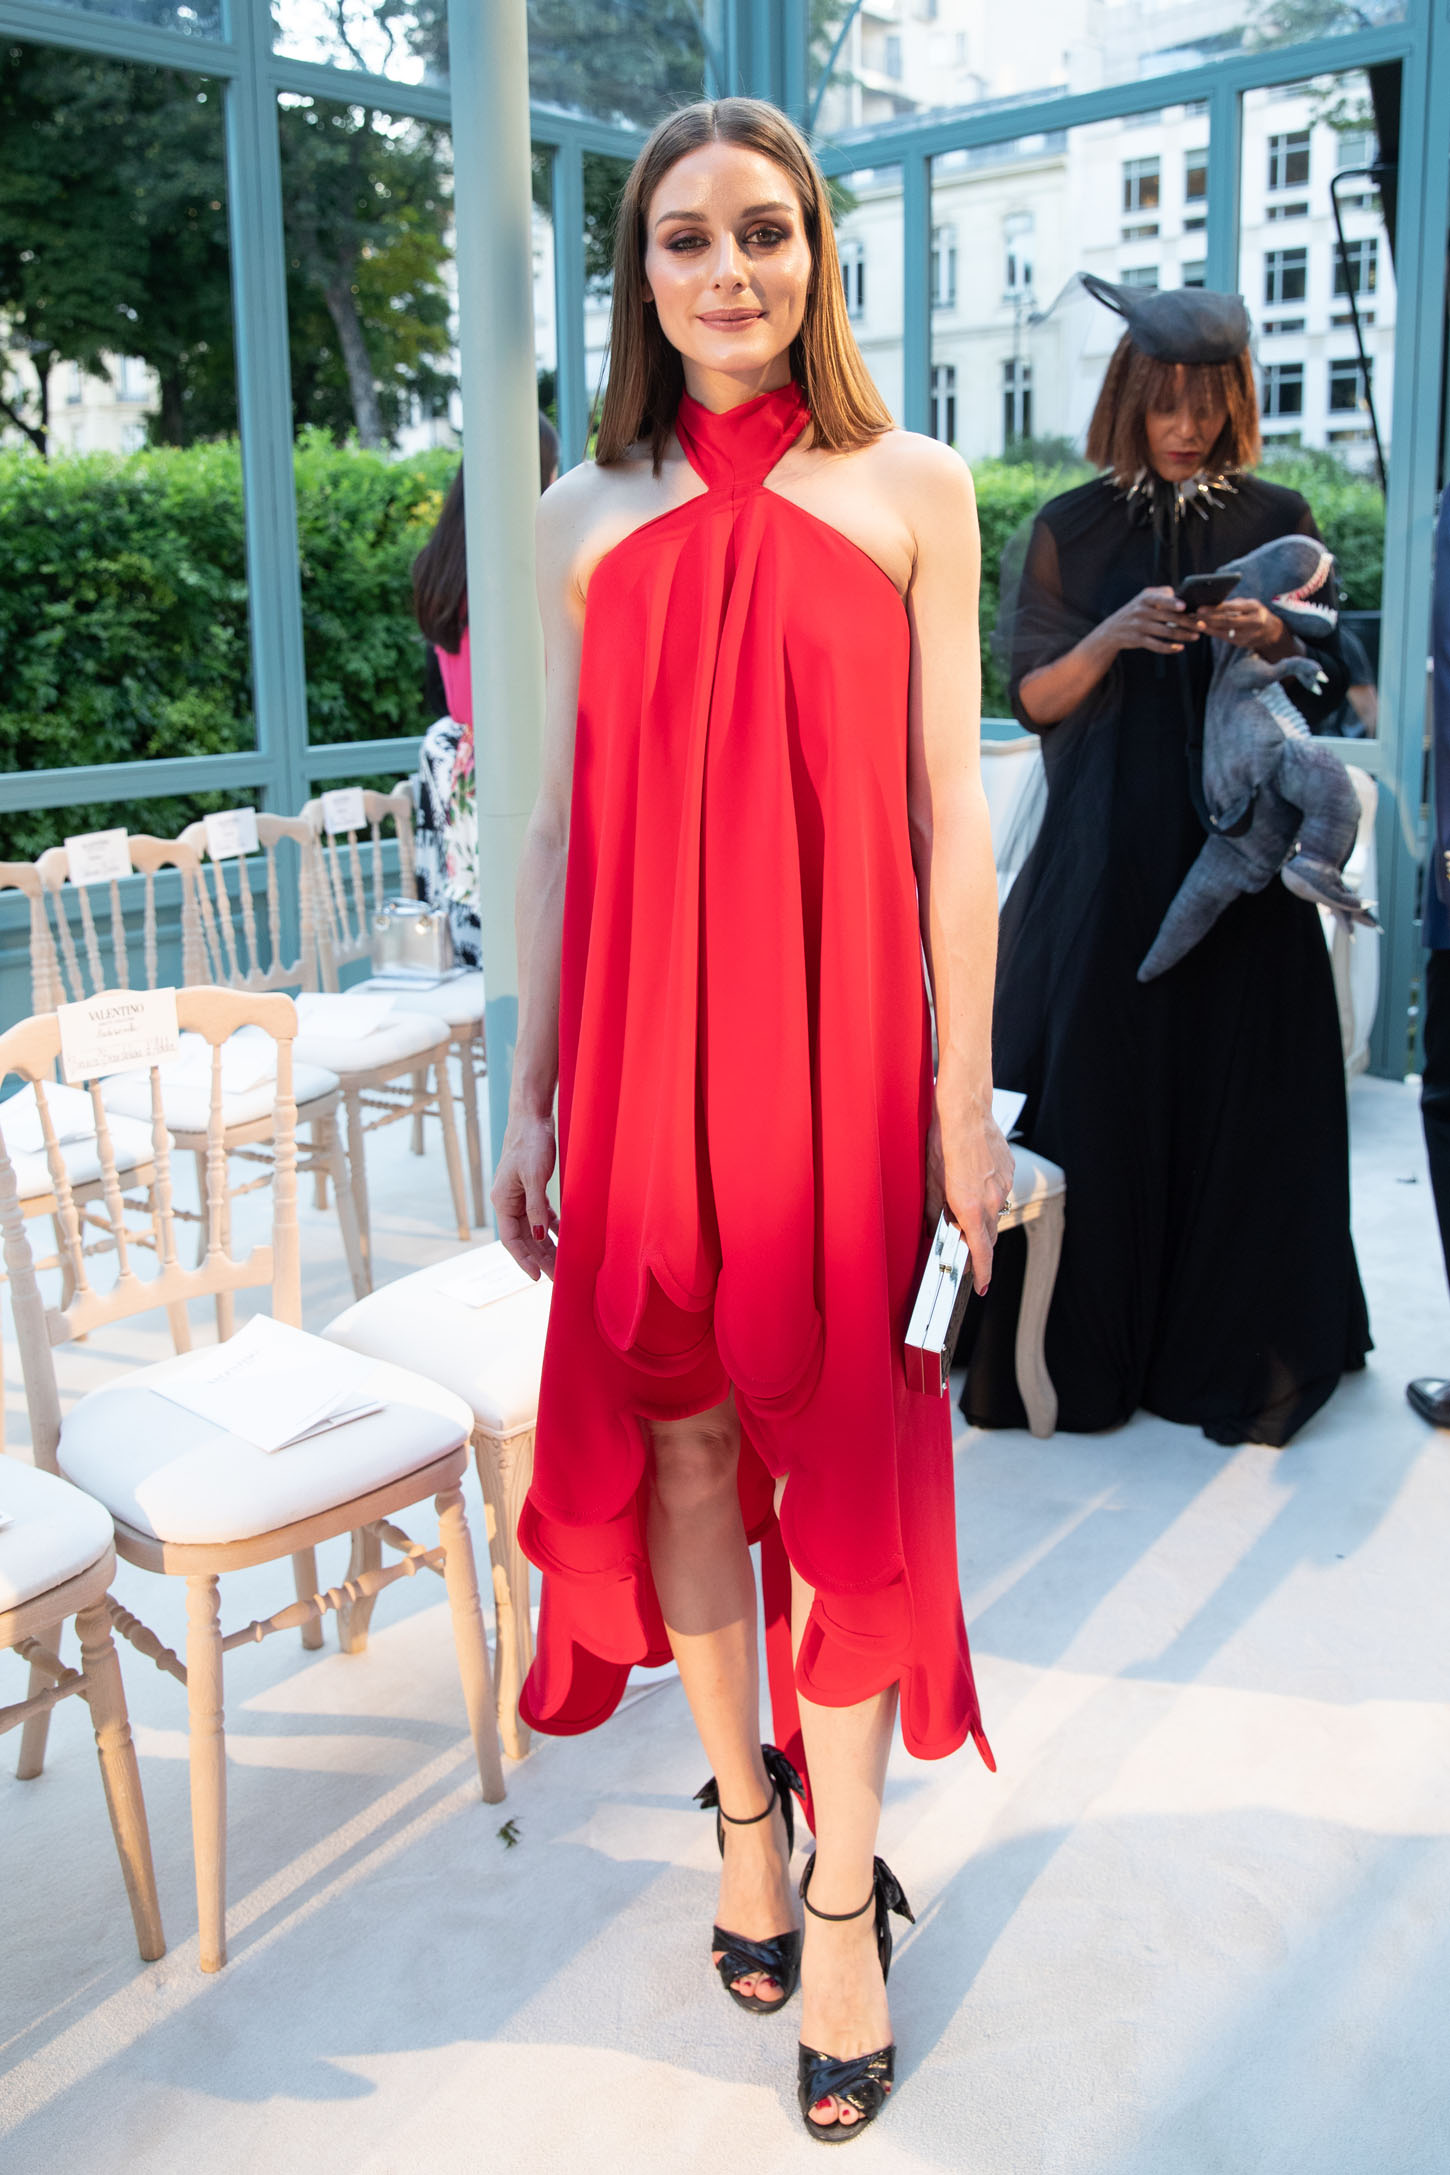 PARIS, FRANCE - JULY 04:  Olivia Palermo attends the Valentino Haute Couture Fall Winter 2018/2019 show as part of Paris Fashion Week on July 4, 2018 in Paris, France.  (Photo by Vittorio Zunino Celotto/Getty Images)